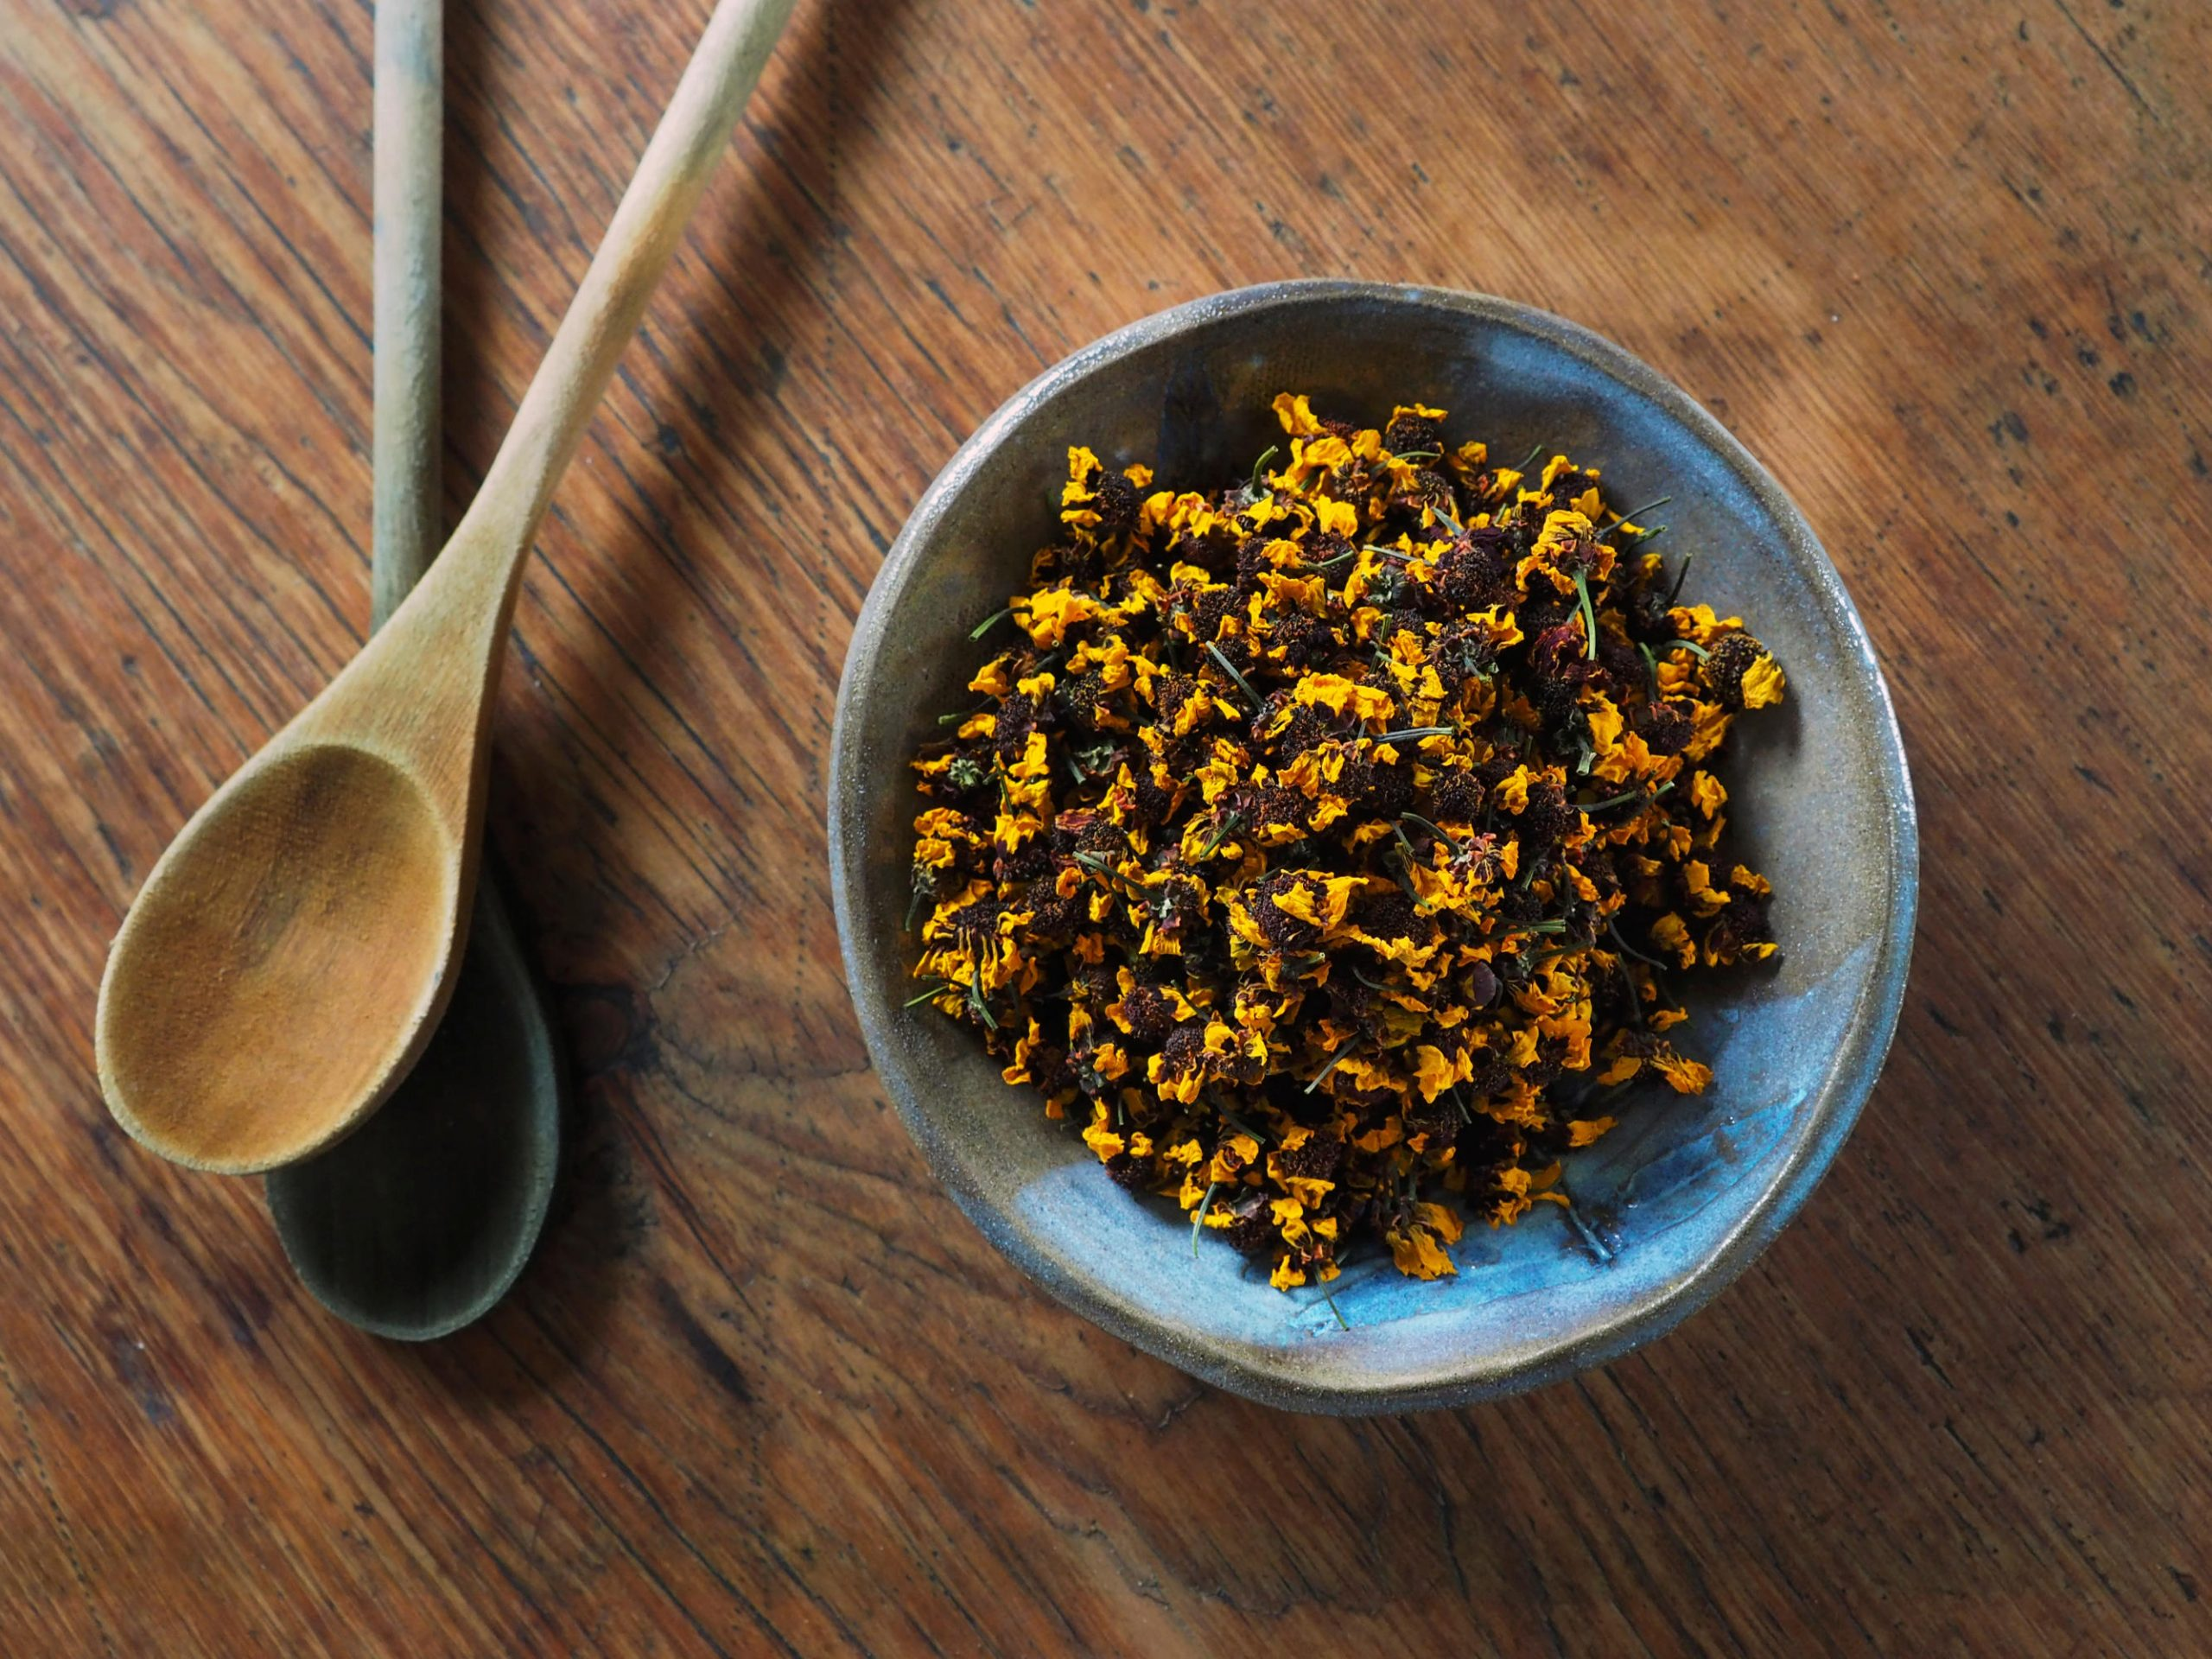 Dyer's Coreopsis natural plant dye in a bowl